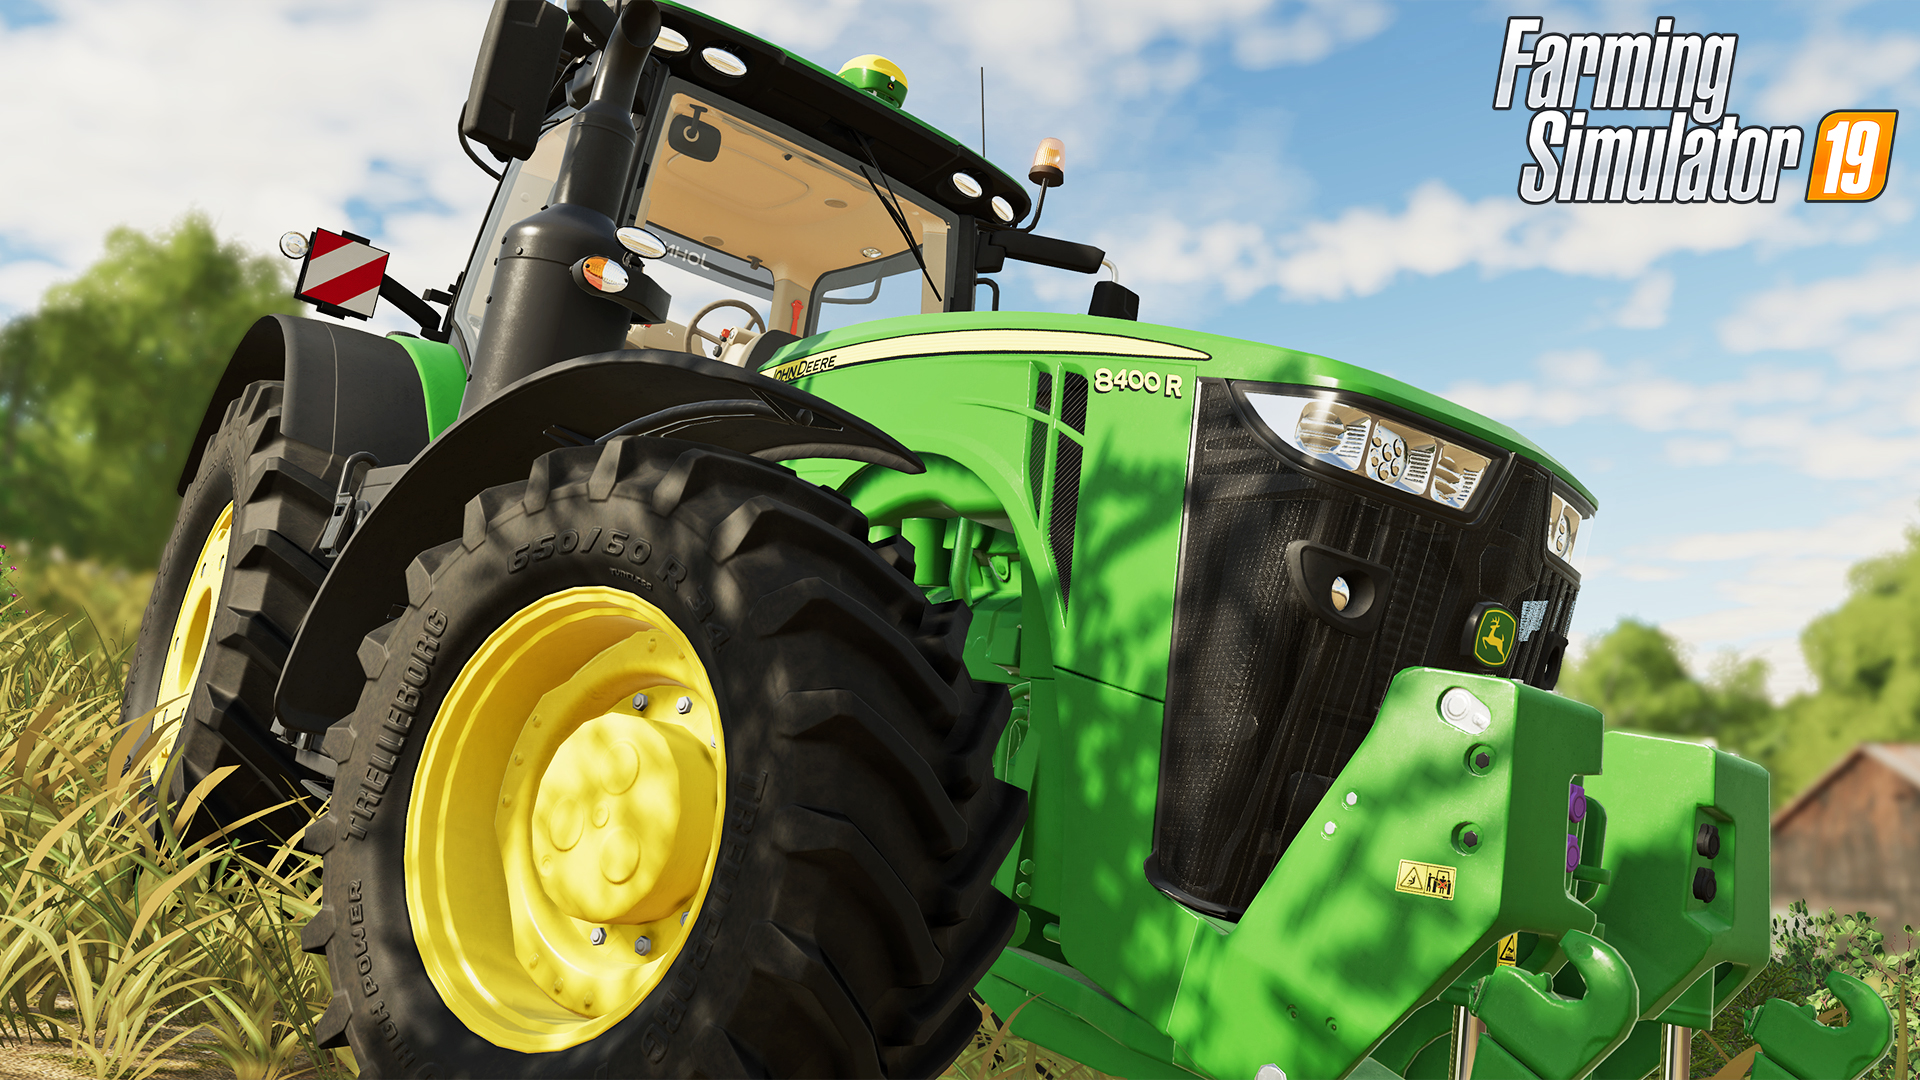 GIANTS Reveals New Features for Farming Simulator 19 at